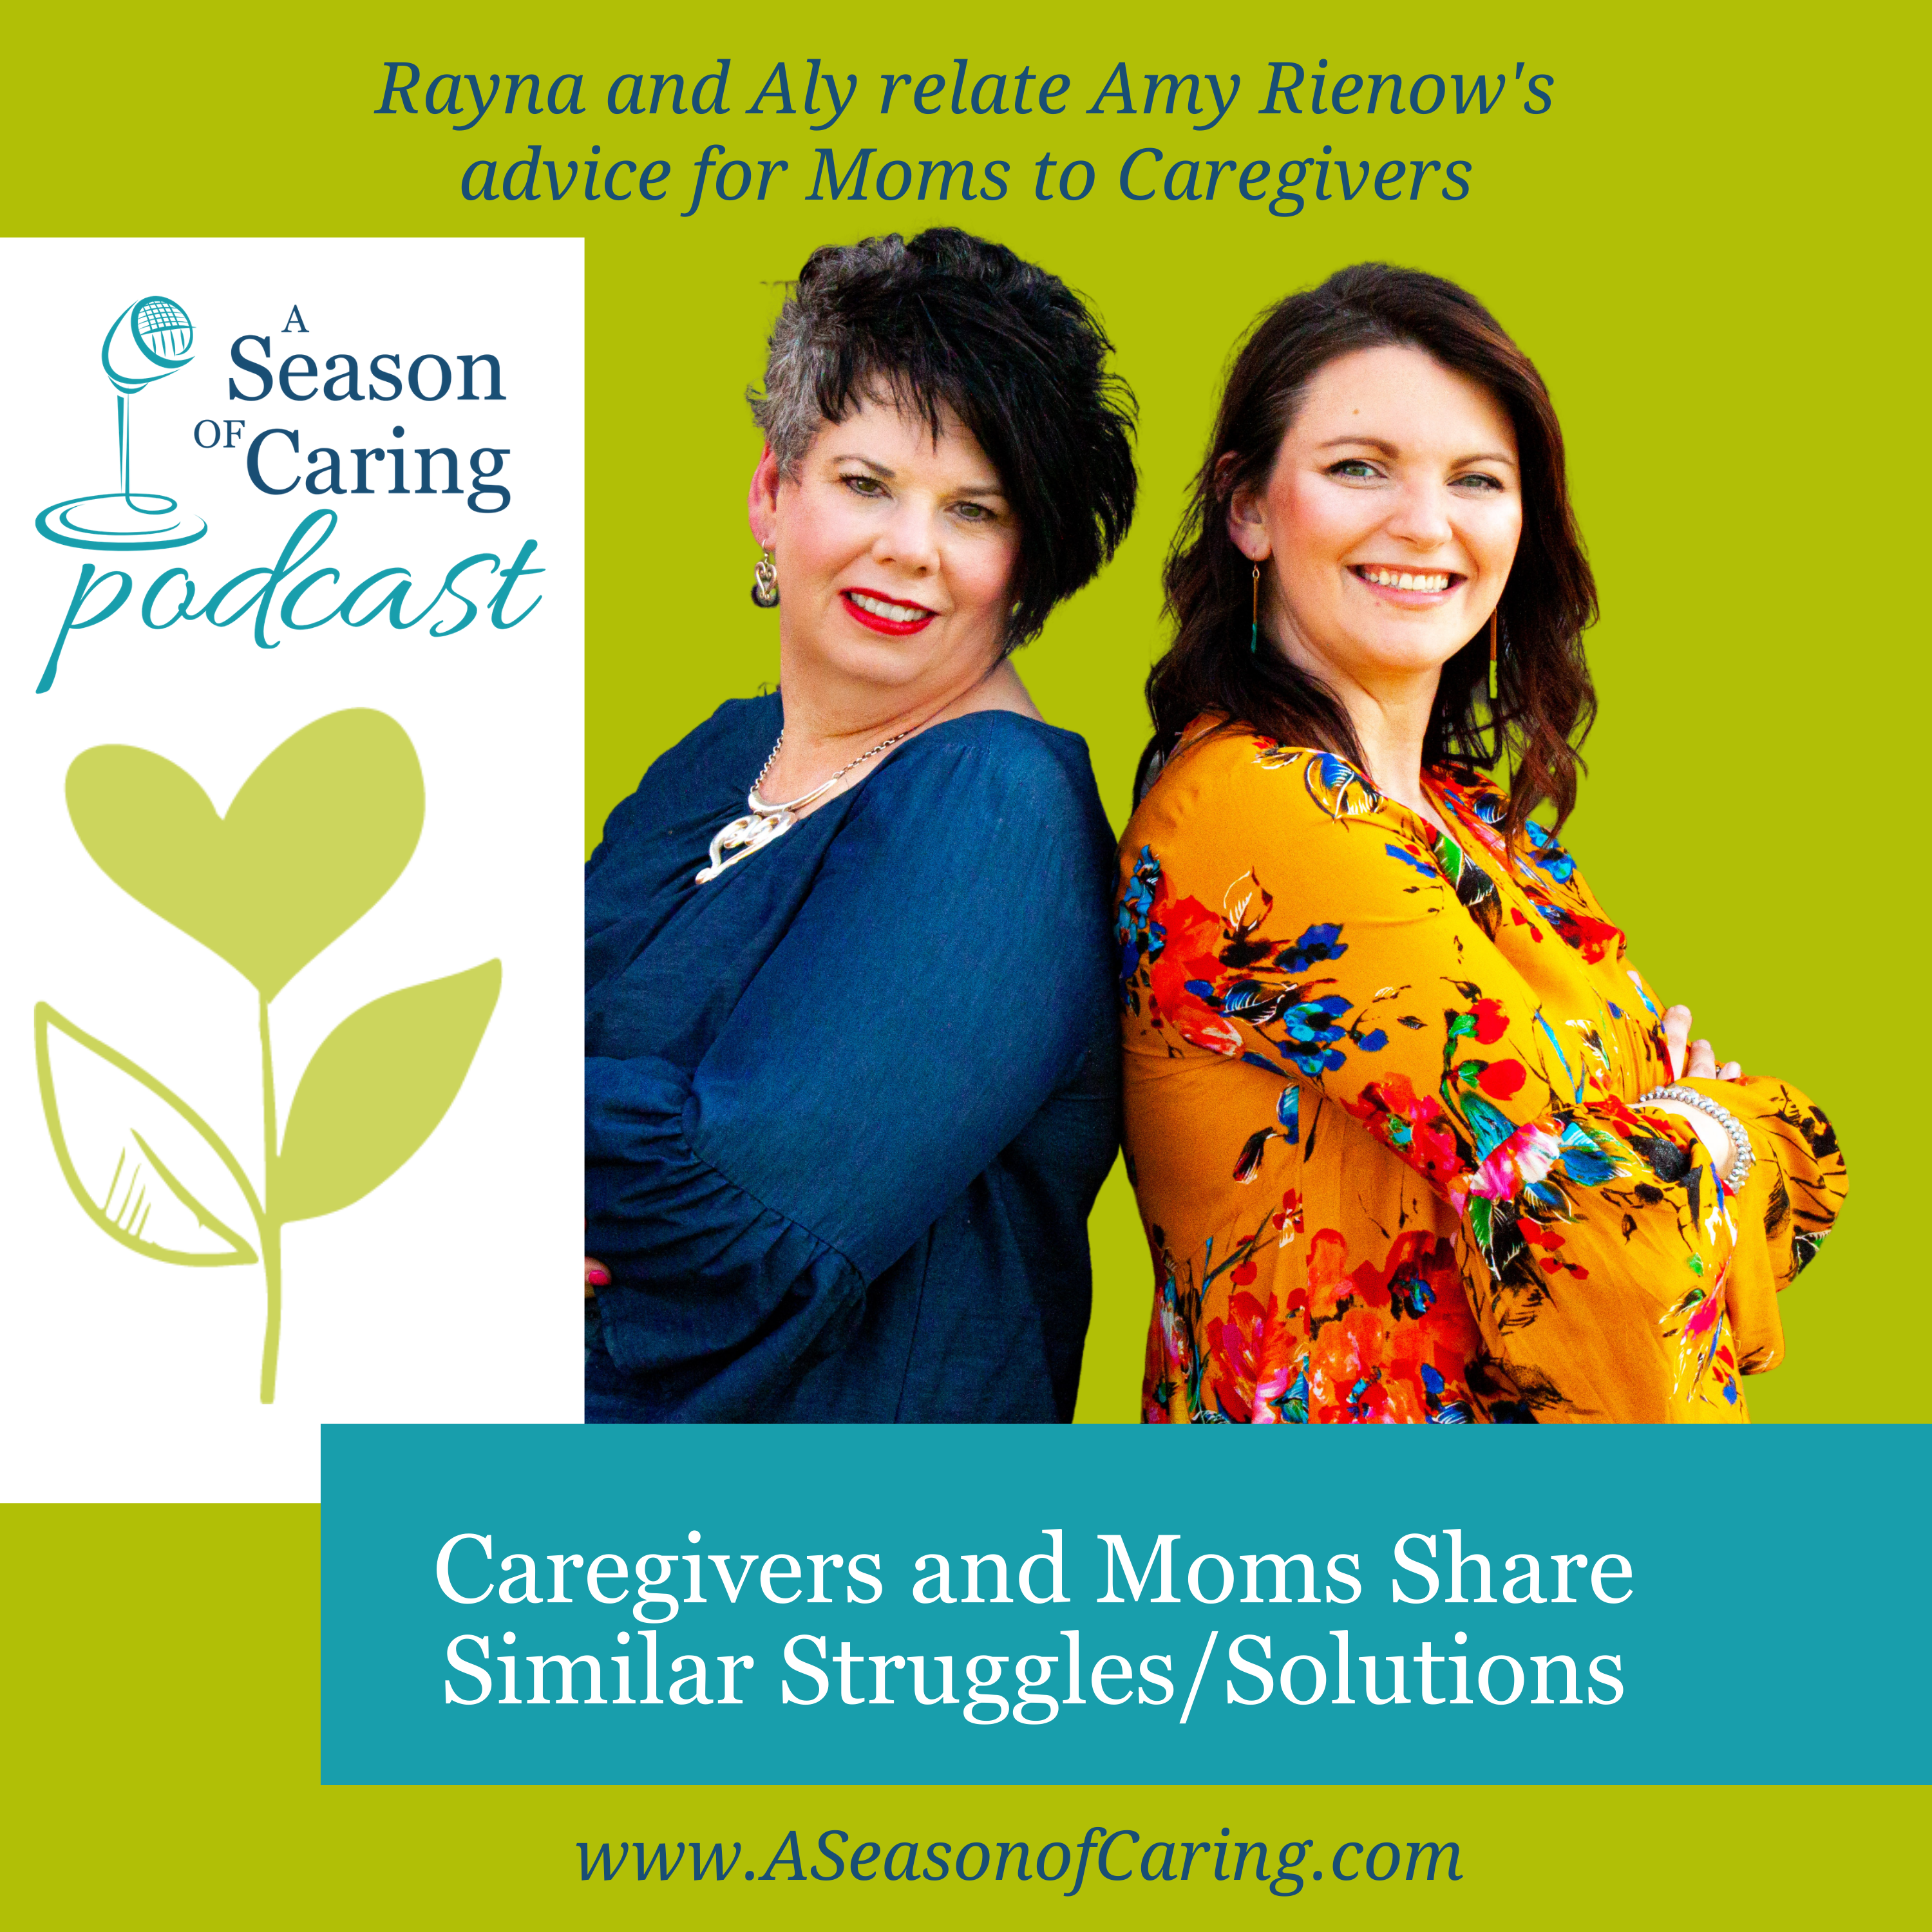 Caregivers and Moms Share Similar Struggles/Solutions